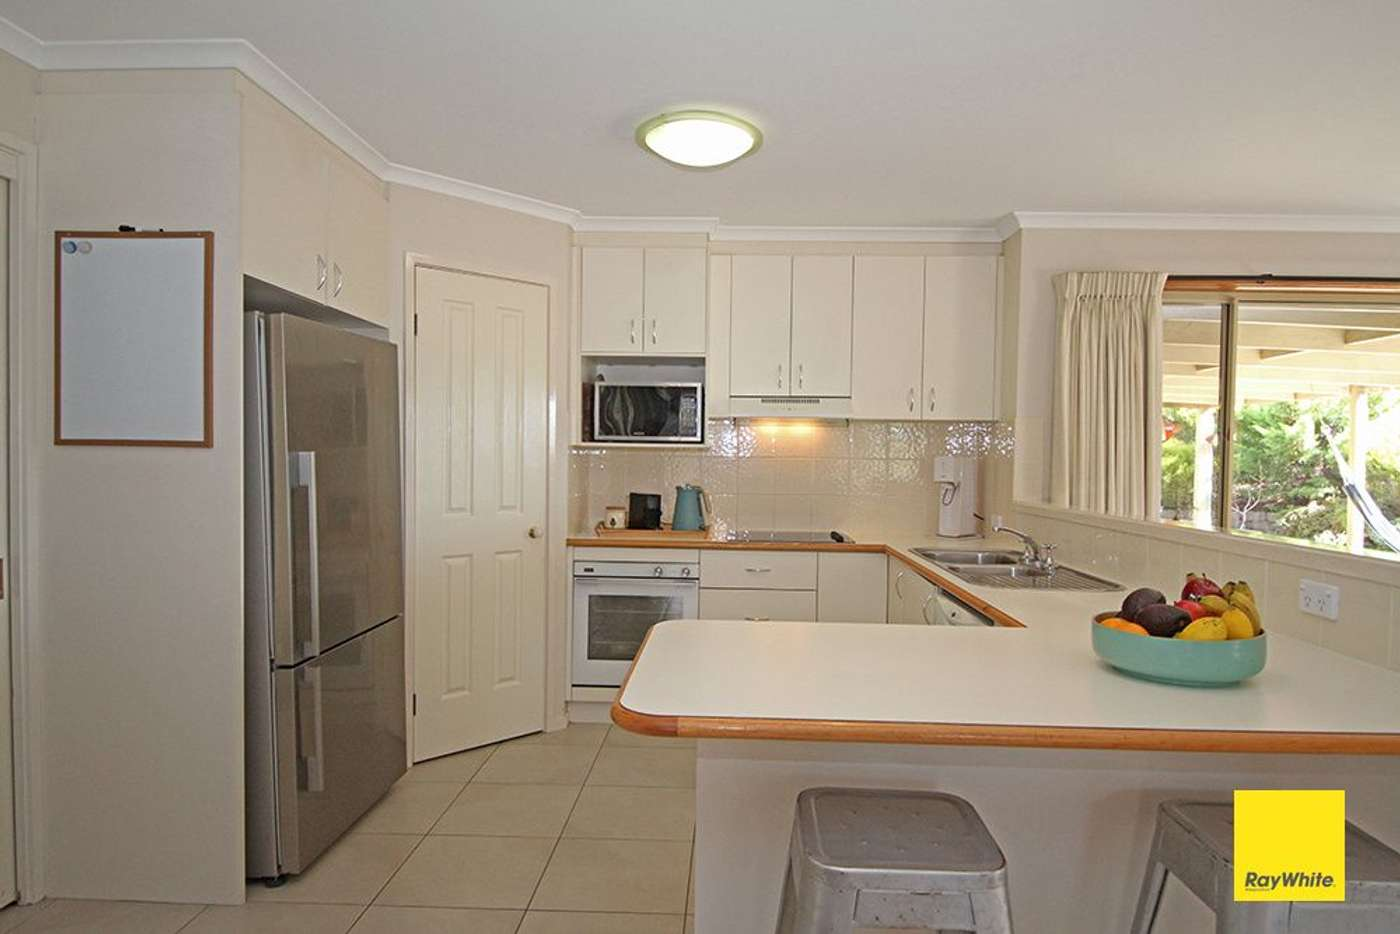 Sixth view of Homely house listing, 12 Collingwood Close, Bungendore NSW 2621